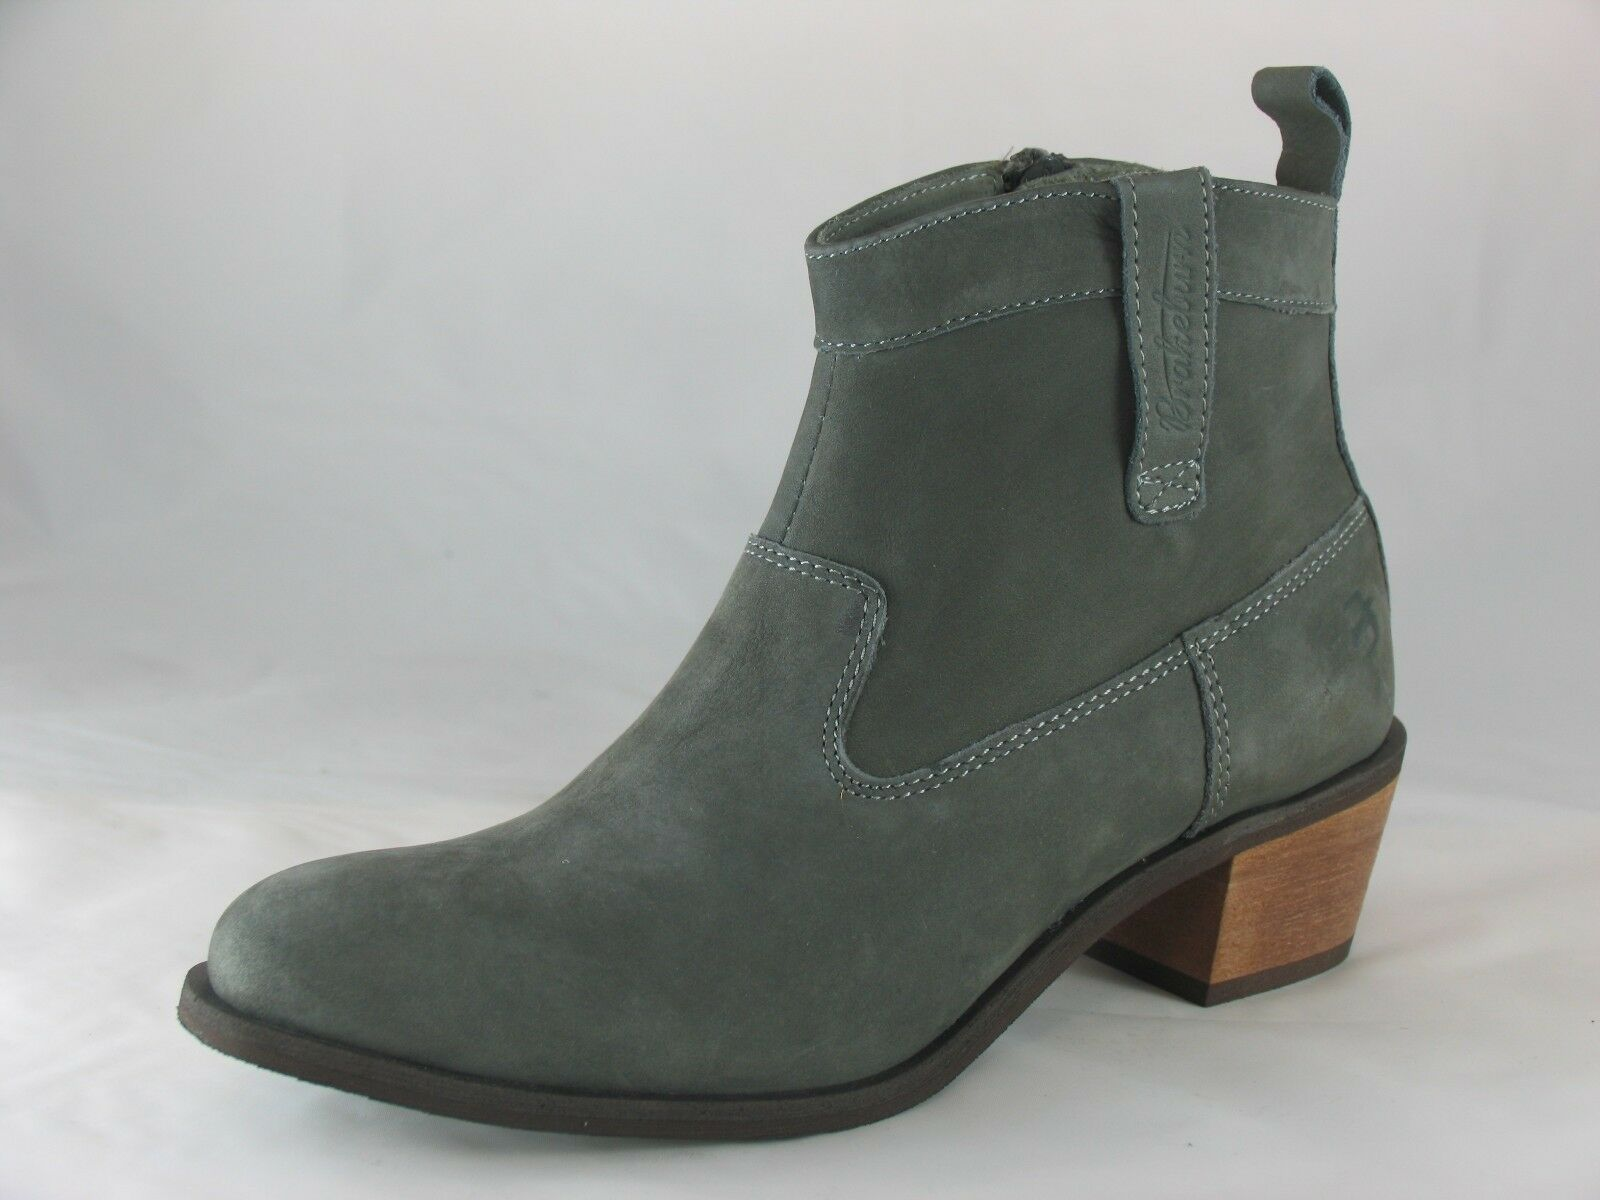 Women's Brakeburn 'Cowboy Boot' Grey Leather Ankle Boots UK 3-8